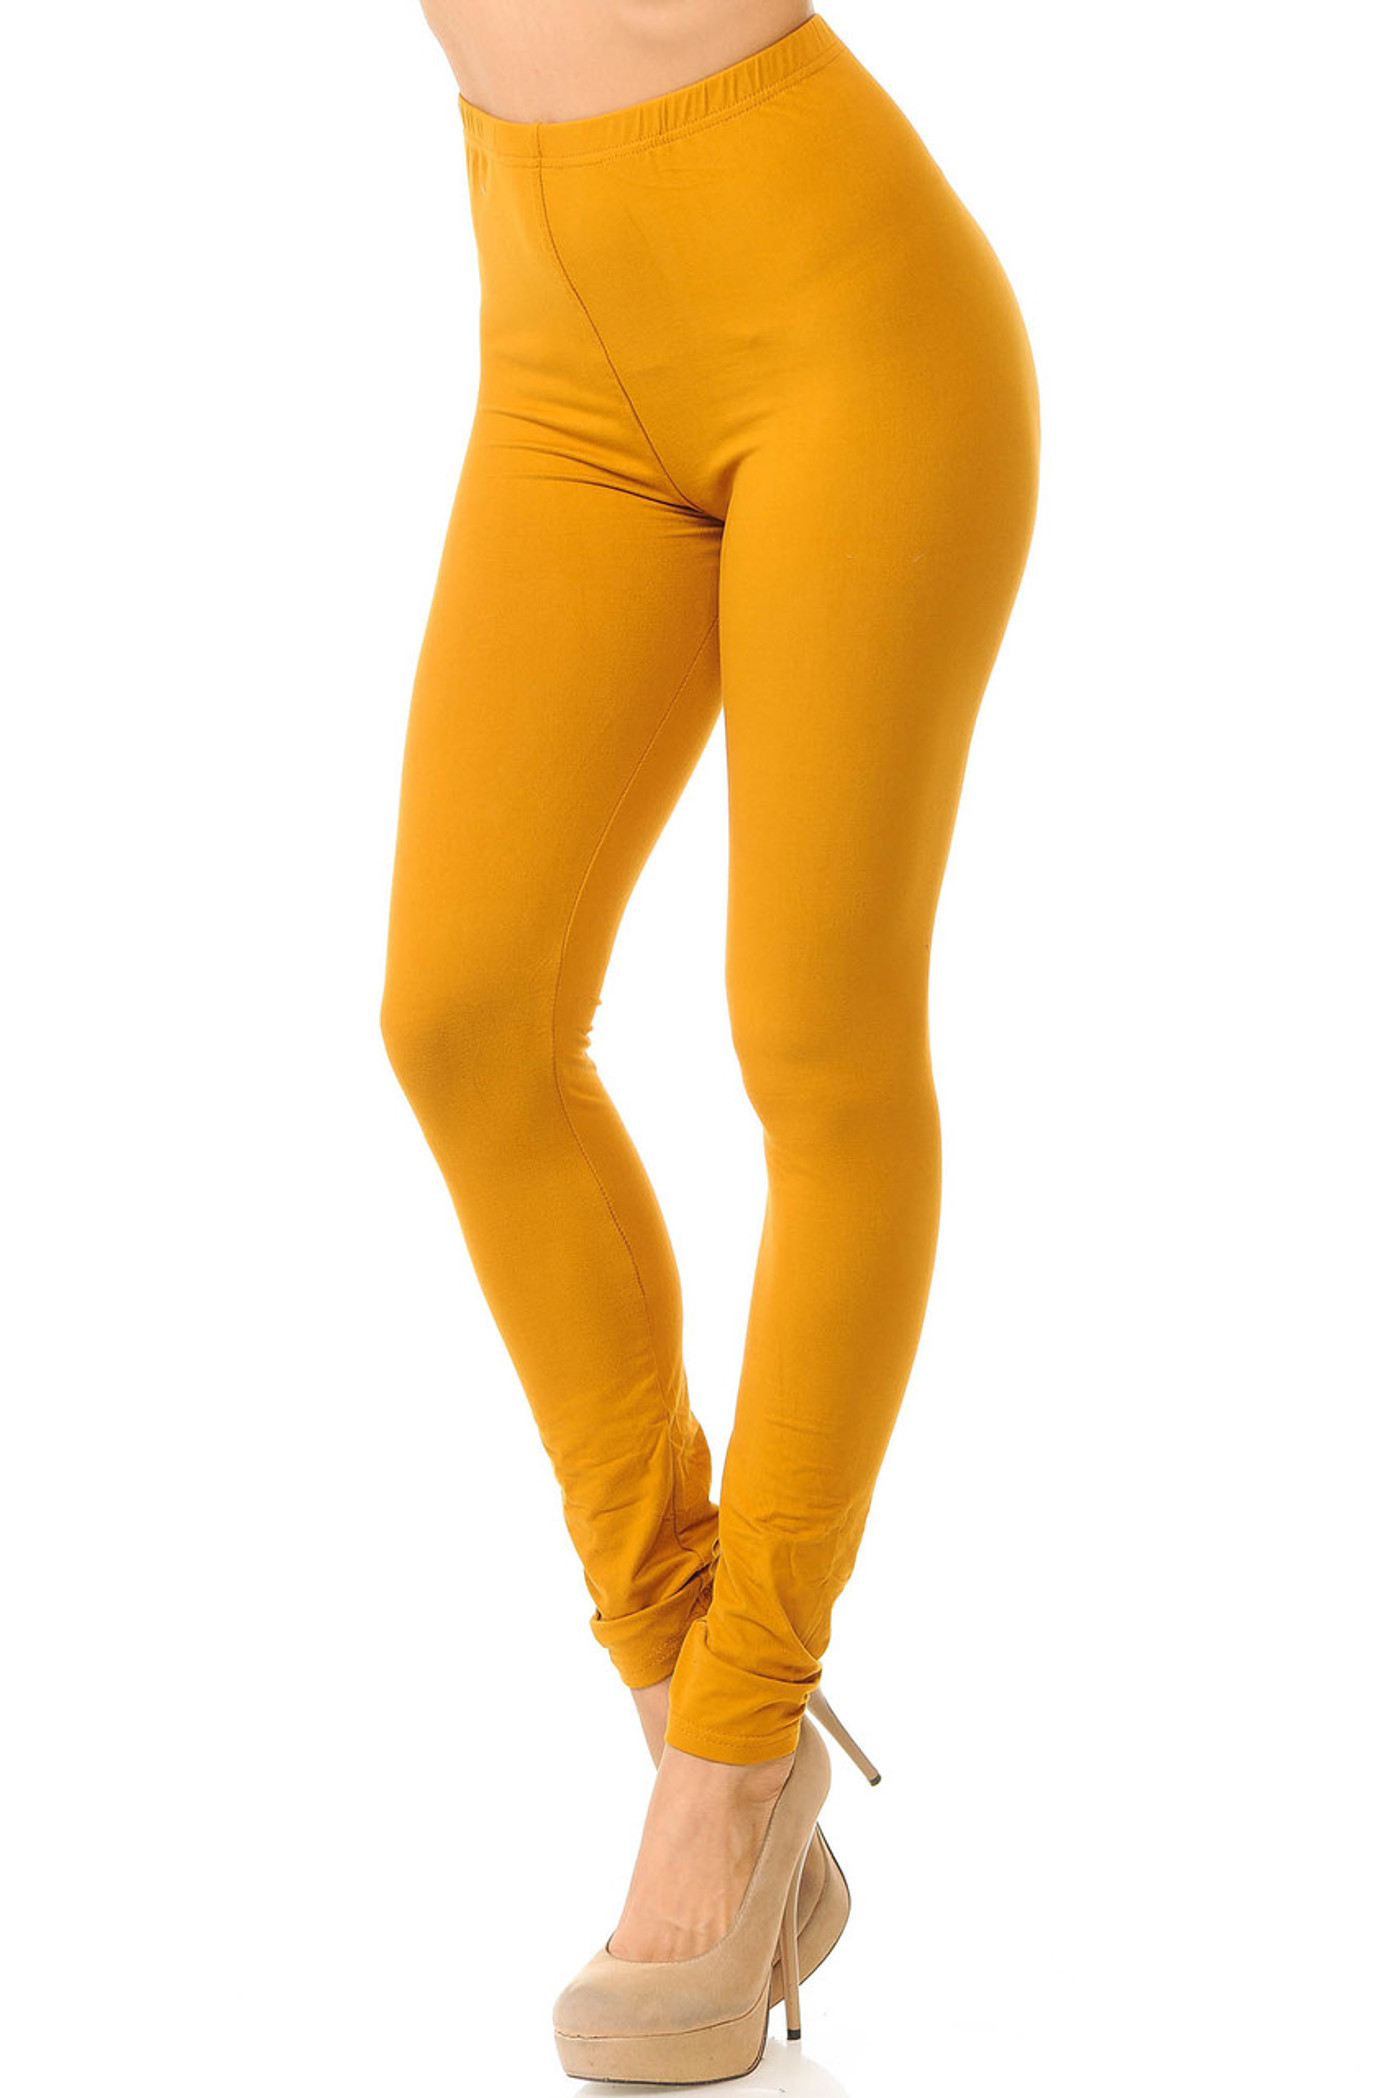 Mustard  Basic Solid Buttery Soft Leggings - New Mix